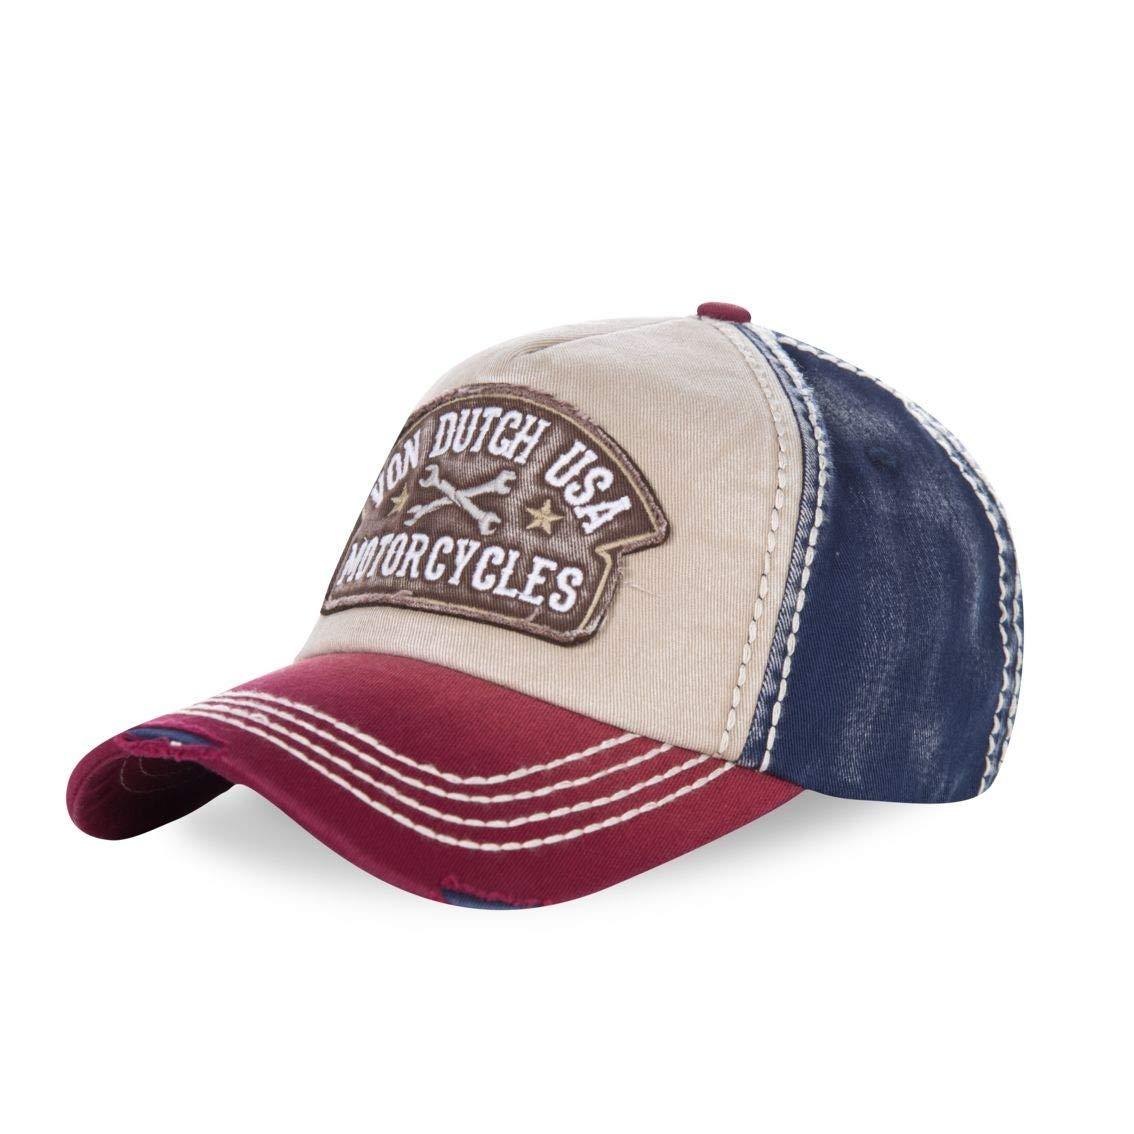 Von Dutch Gorra Talla Unica: Amazon.es: Deportes y aire libre